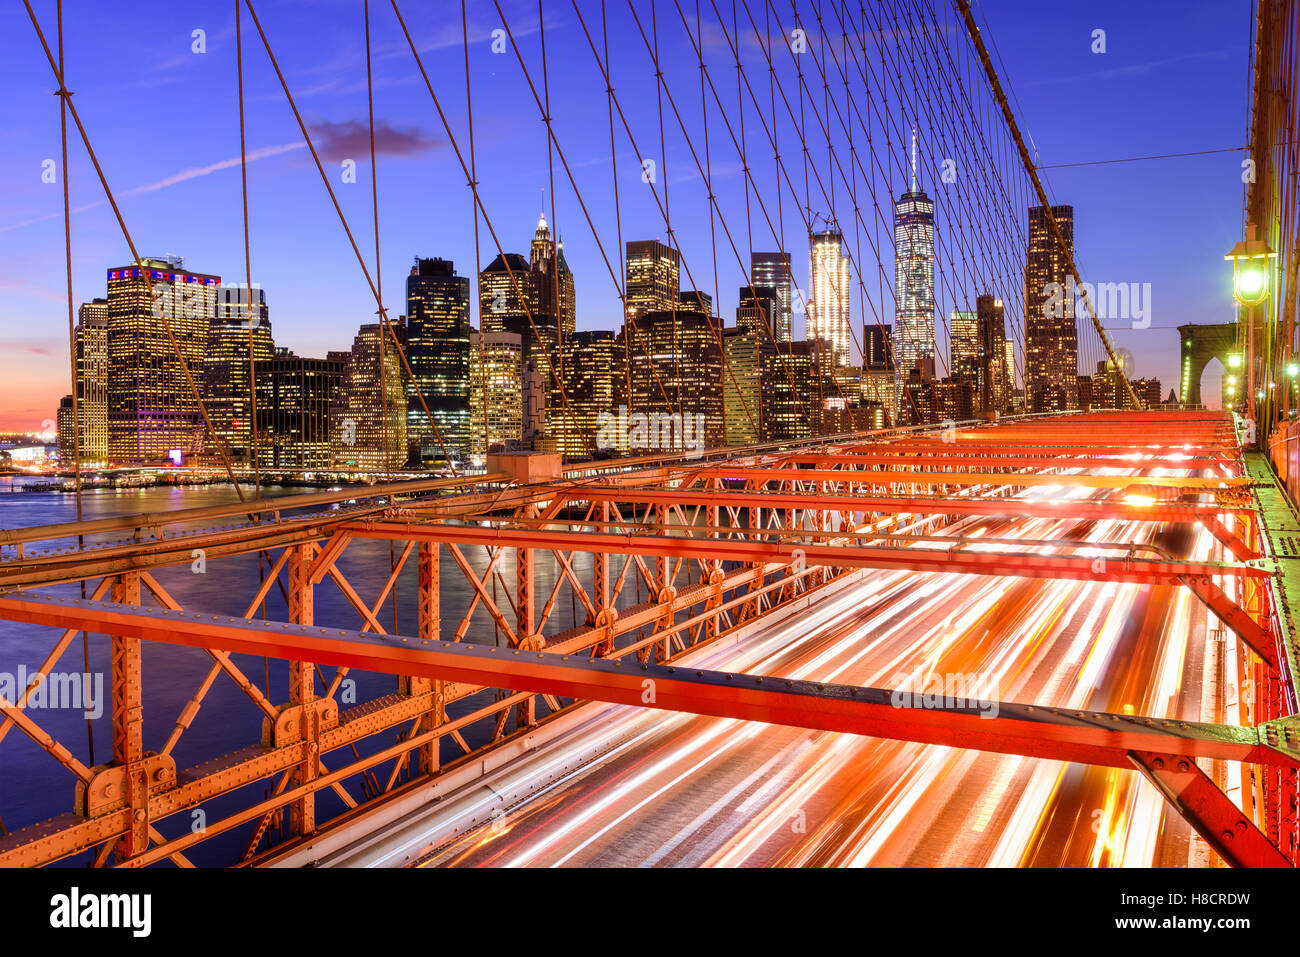 New York City financial district cityscape from the Brooklyn Bridge. - Stock Image